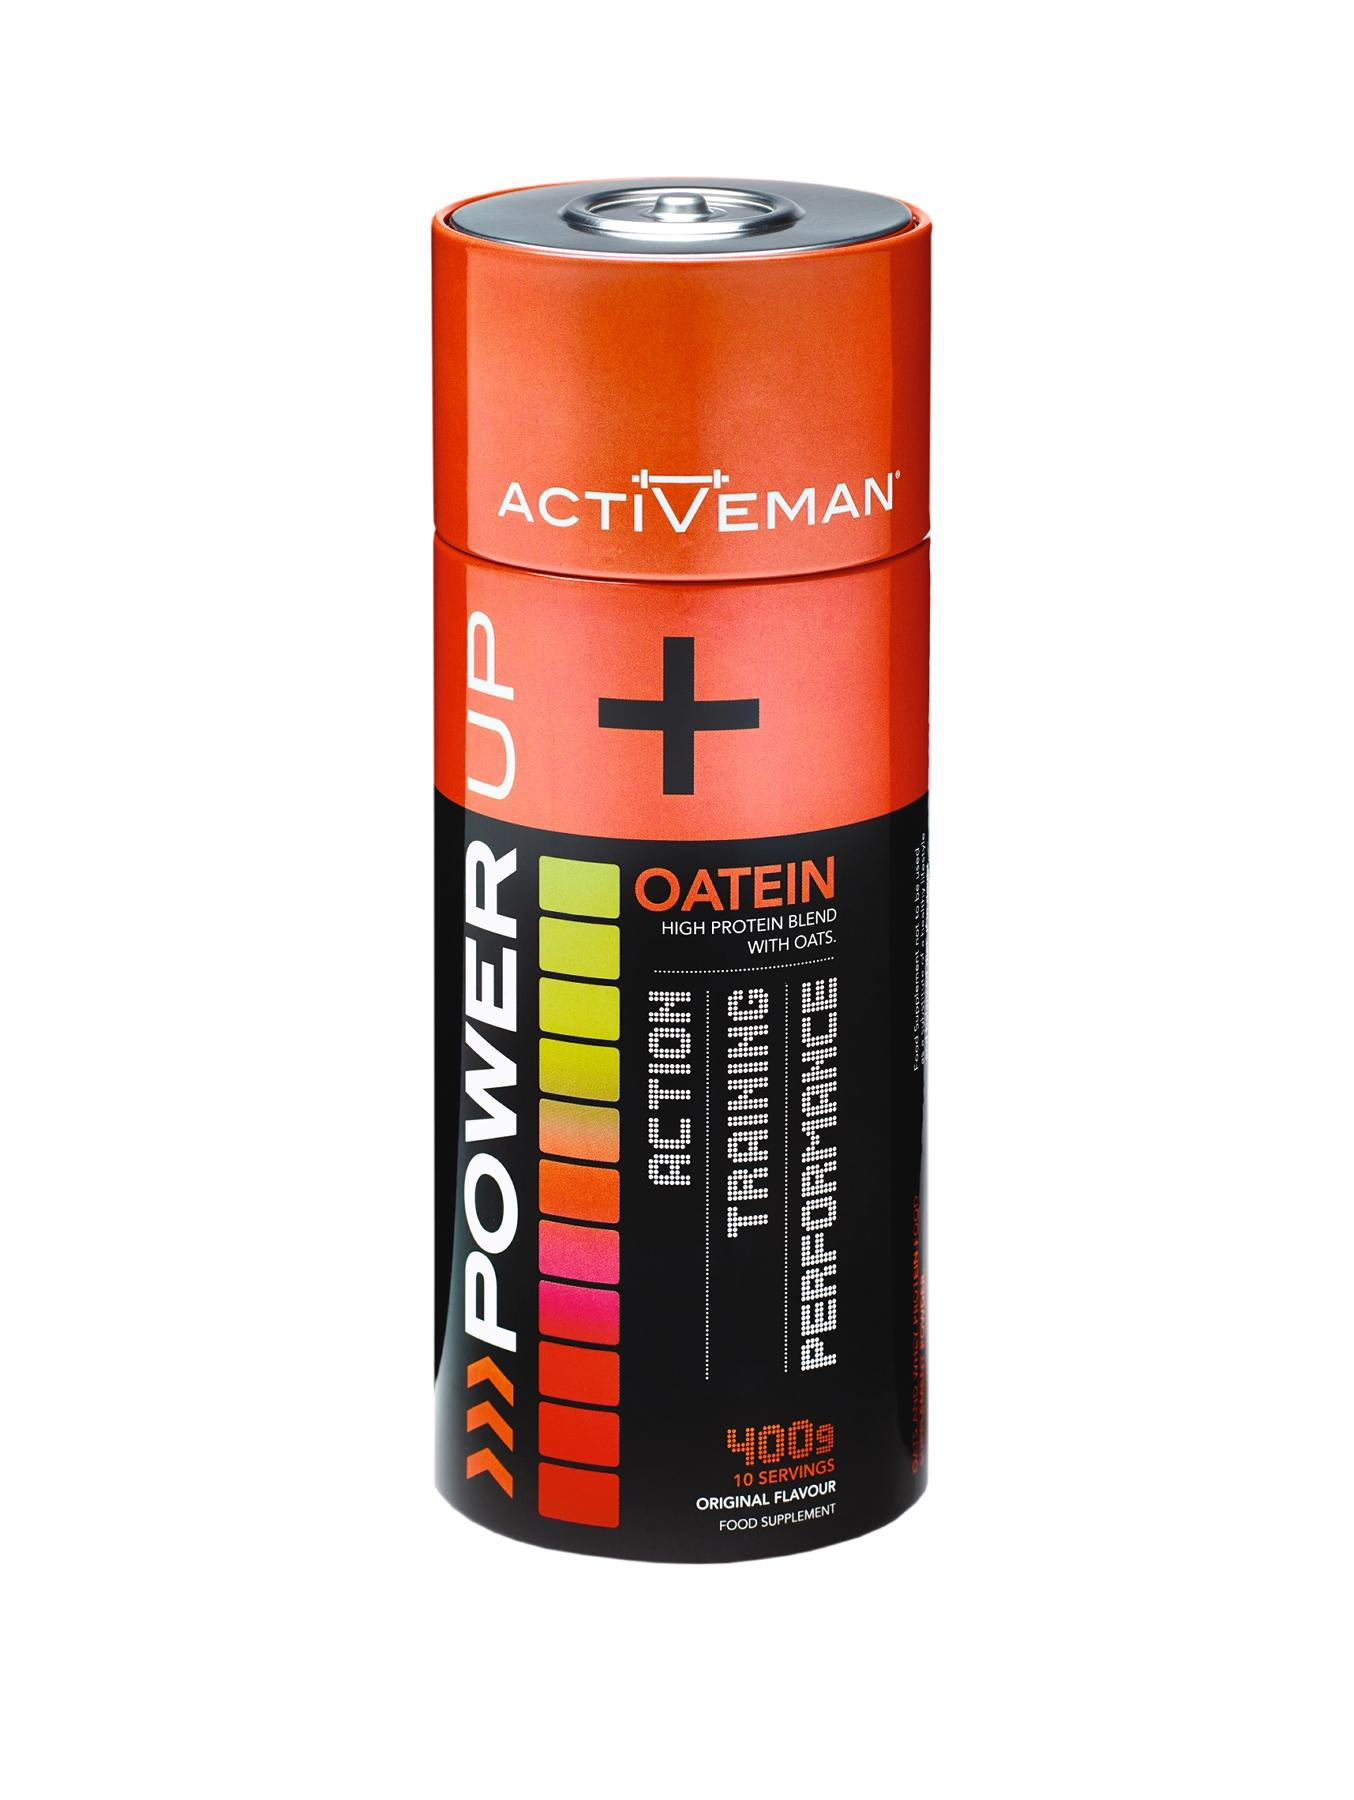 ActiVeman Power Up Oatein 400g (10 Servings approx)